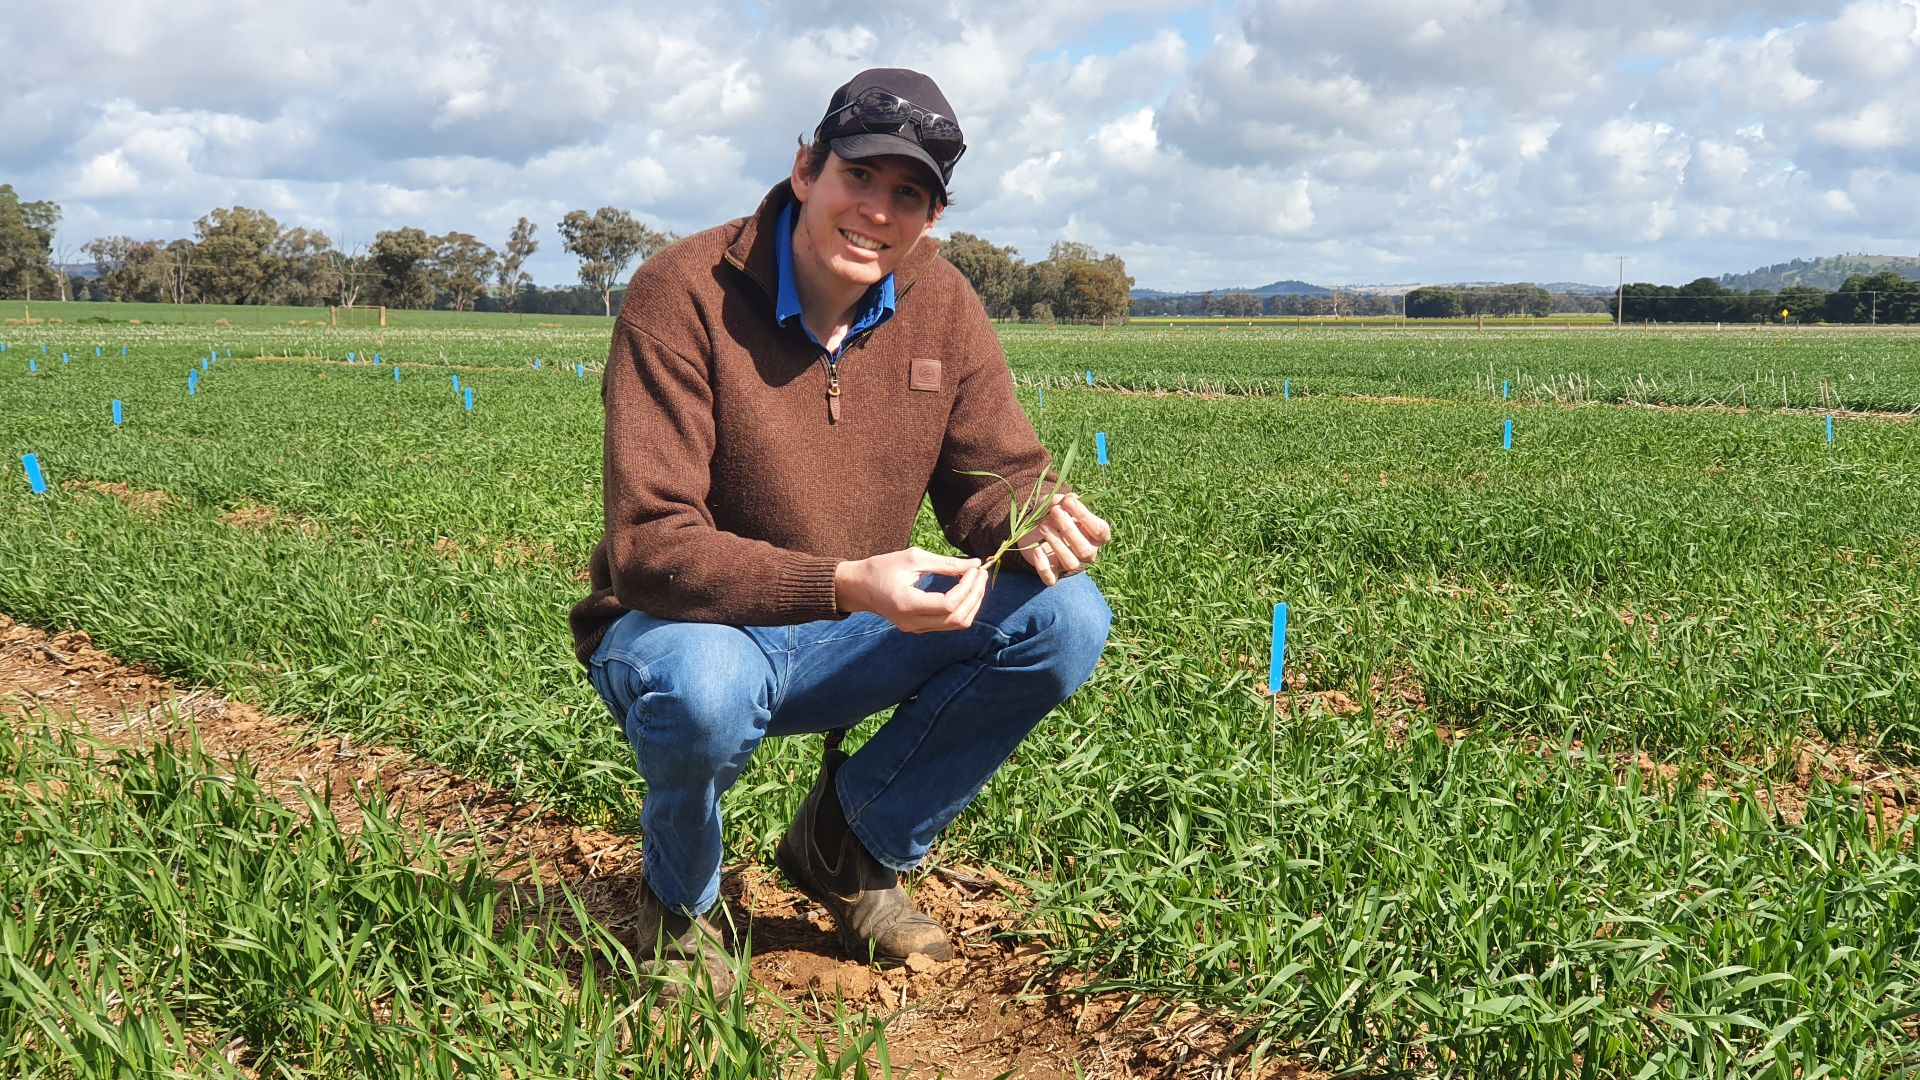 From Farrer to space: new PhD research investigates characteristics of fast-growing wheat